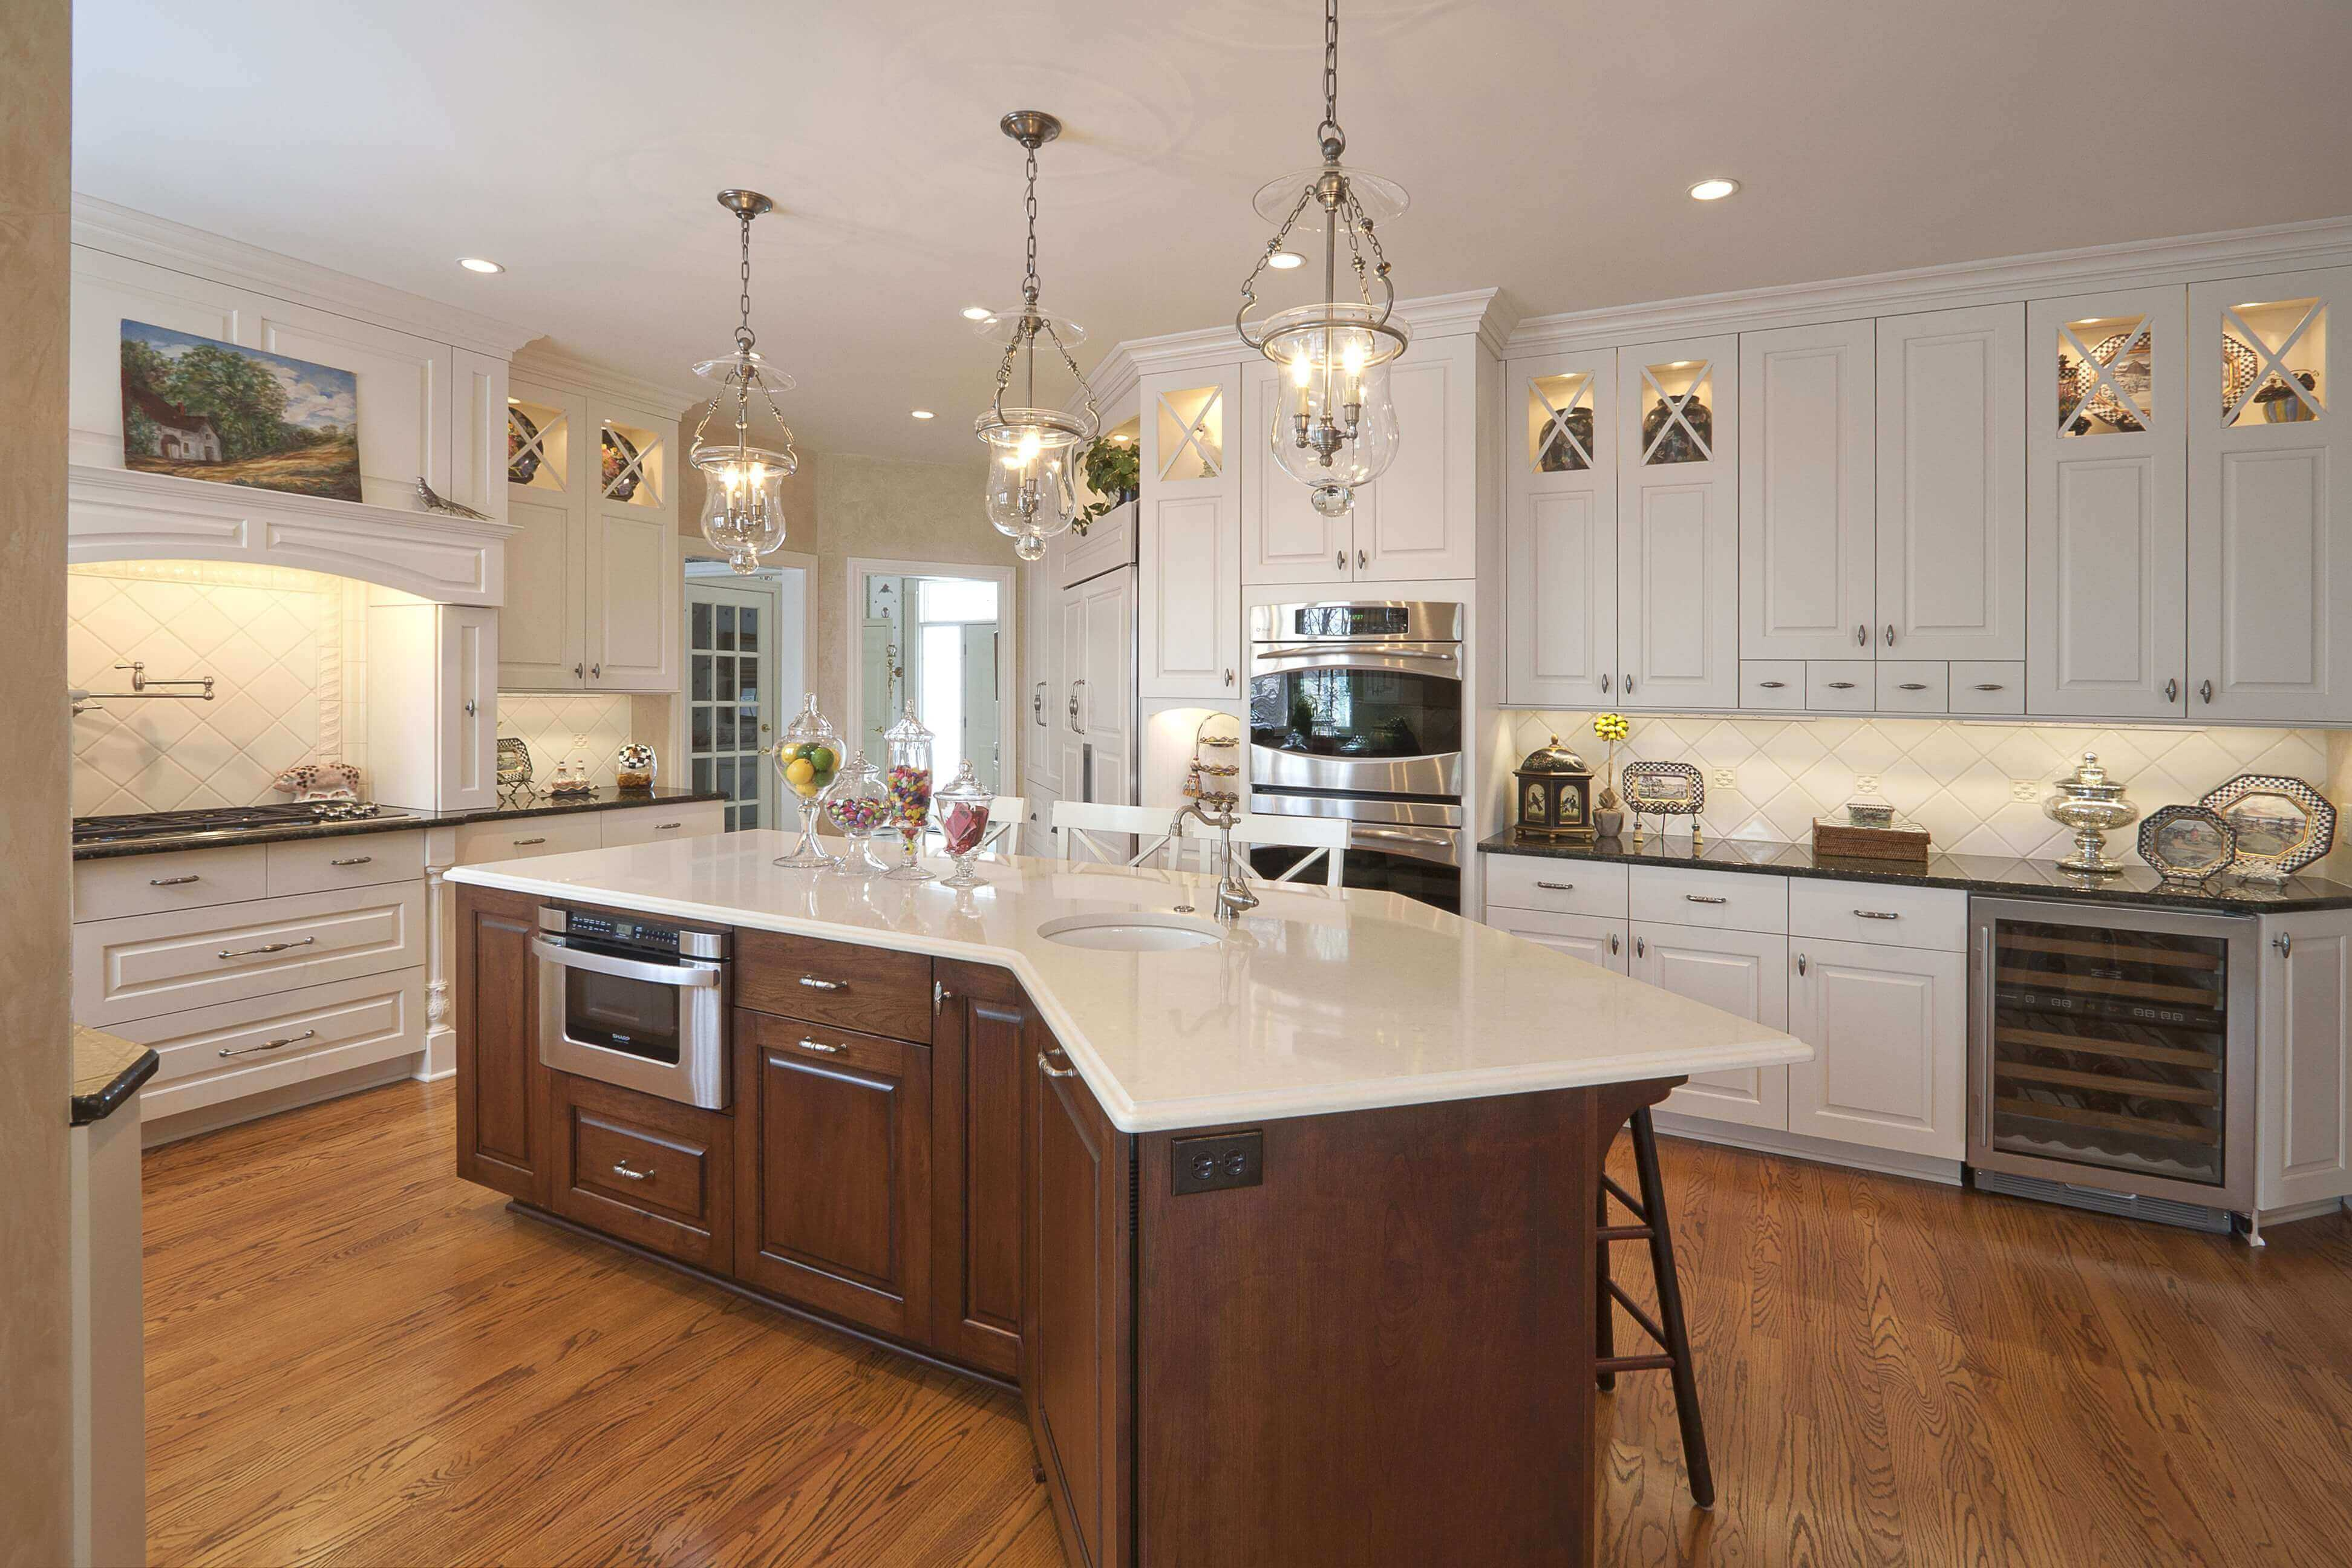 Kitchen, Bathroom Remodeling Rochester NY, Home Renovation Contractor